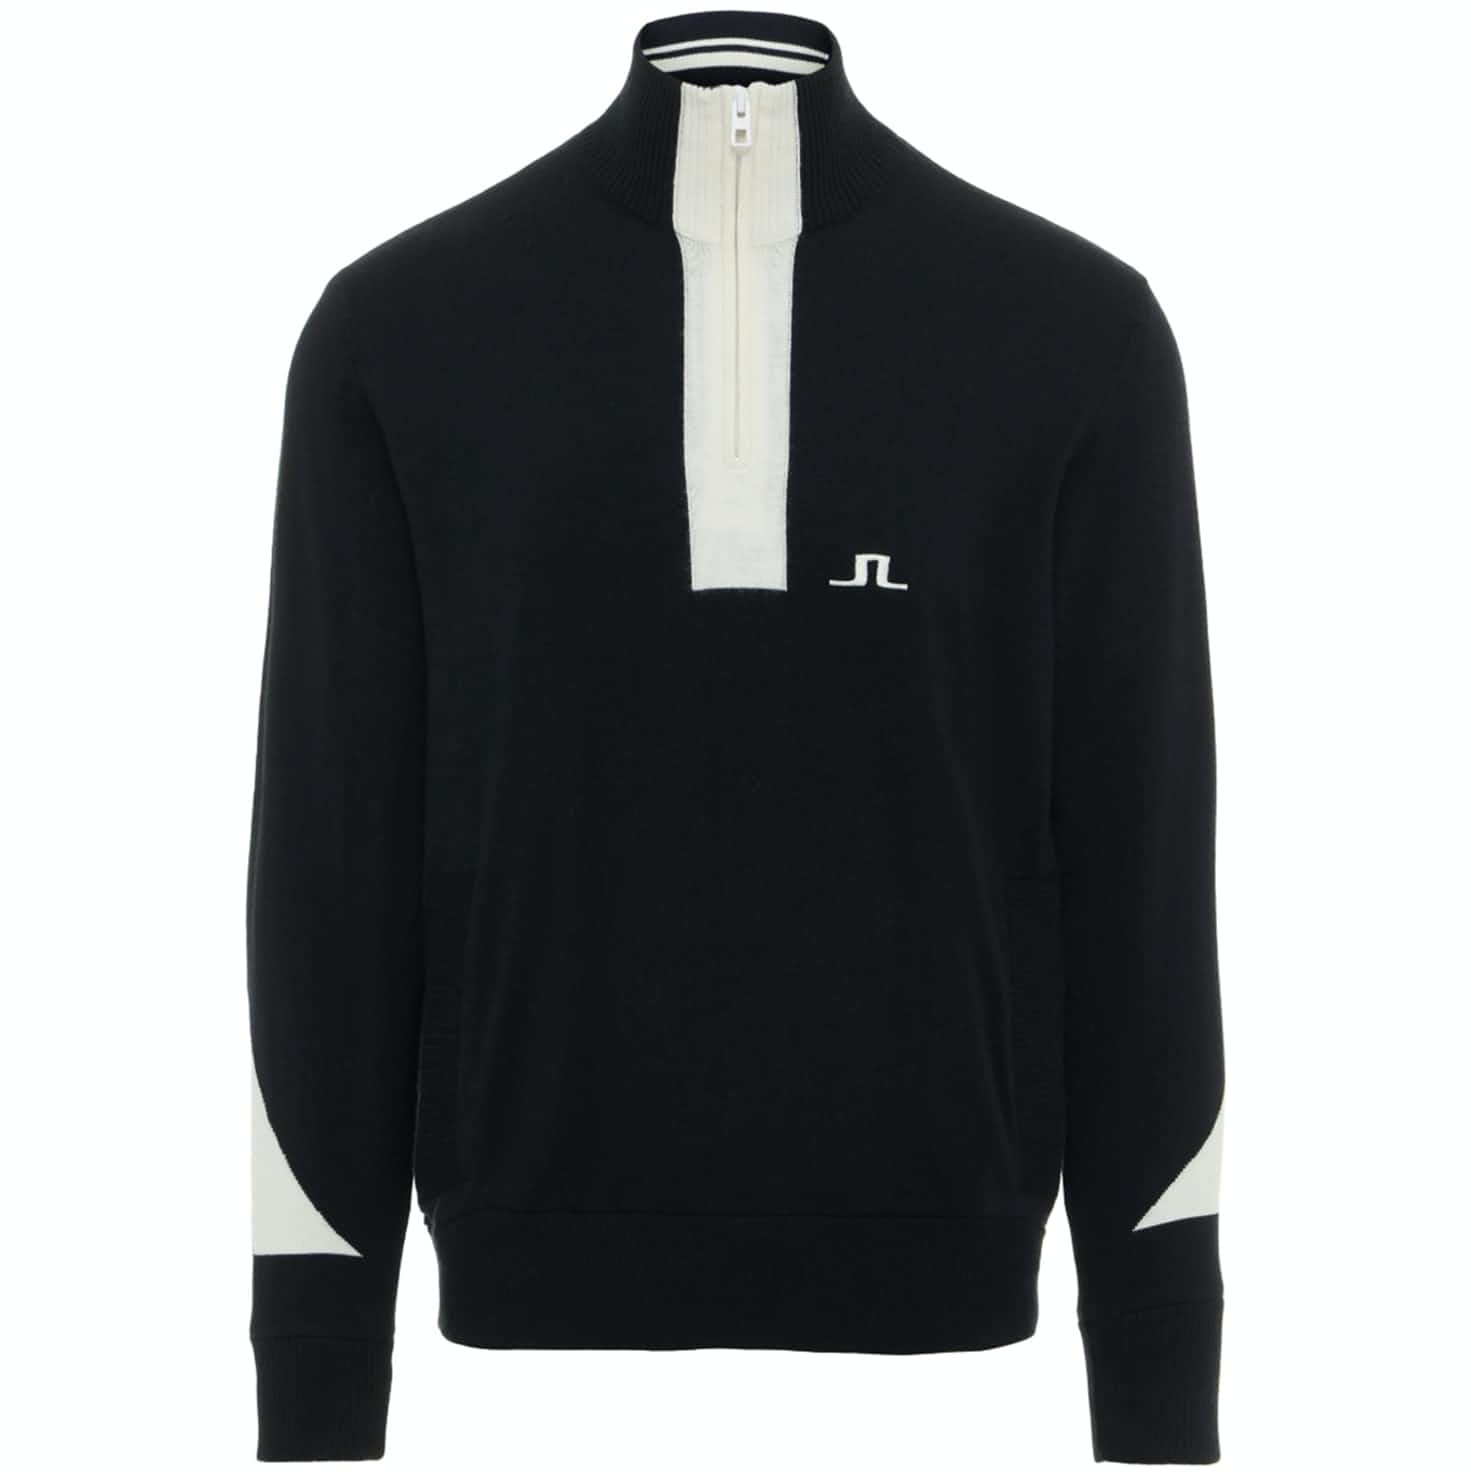 Gen Quarter Zip Merino Wool Coolmax Black - AW19